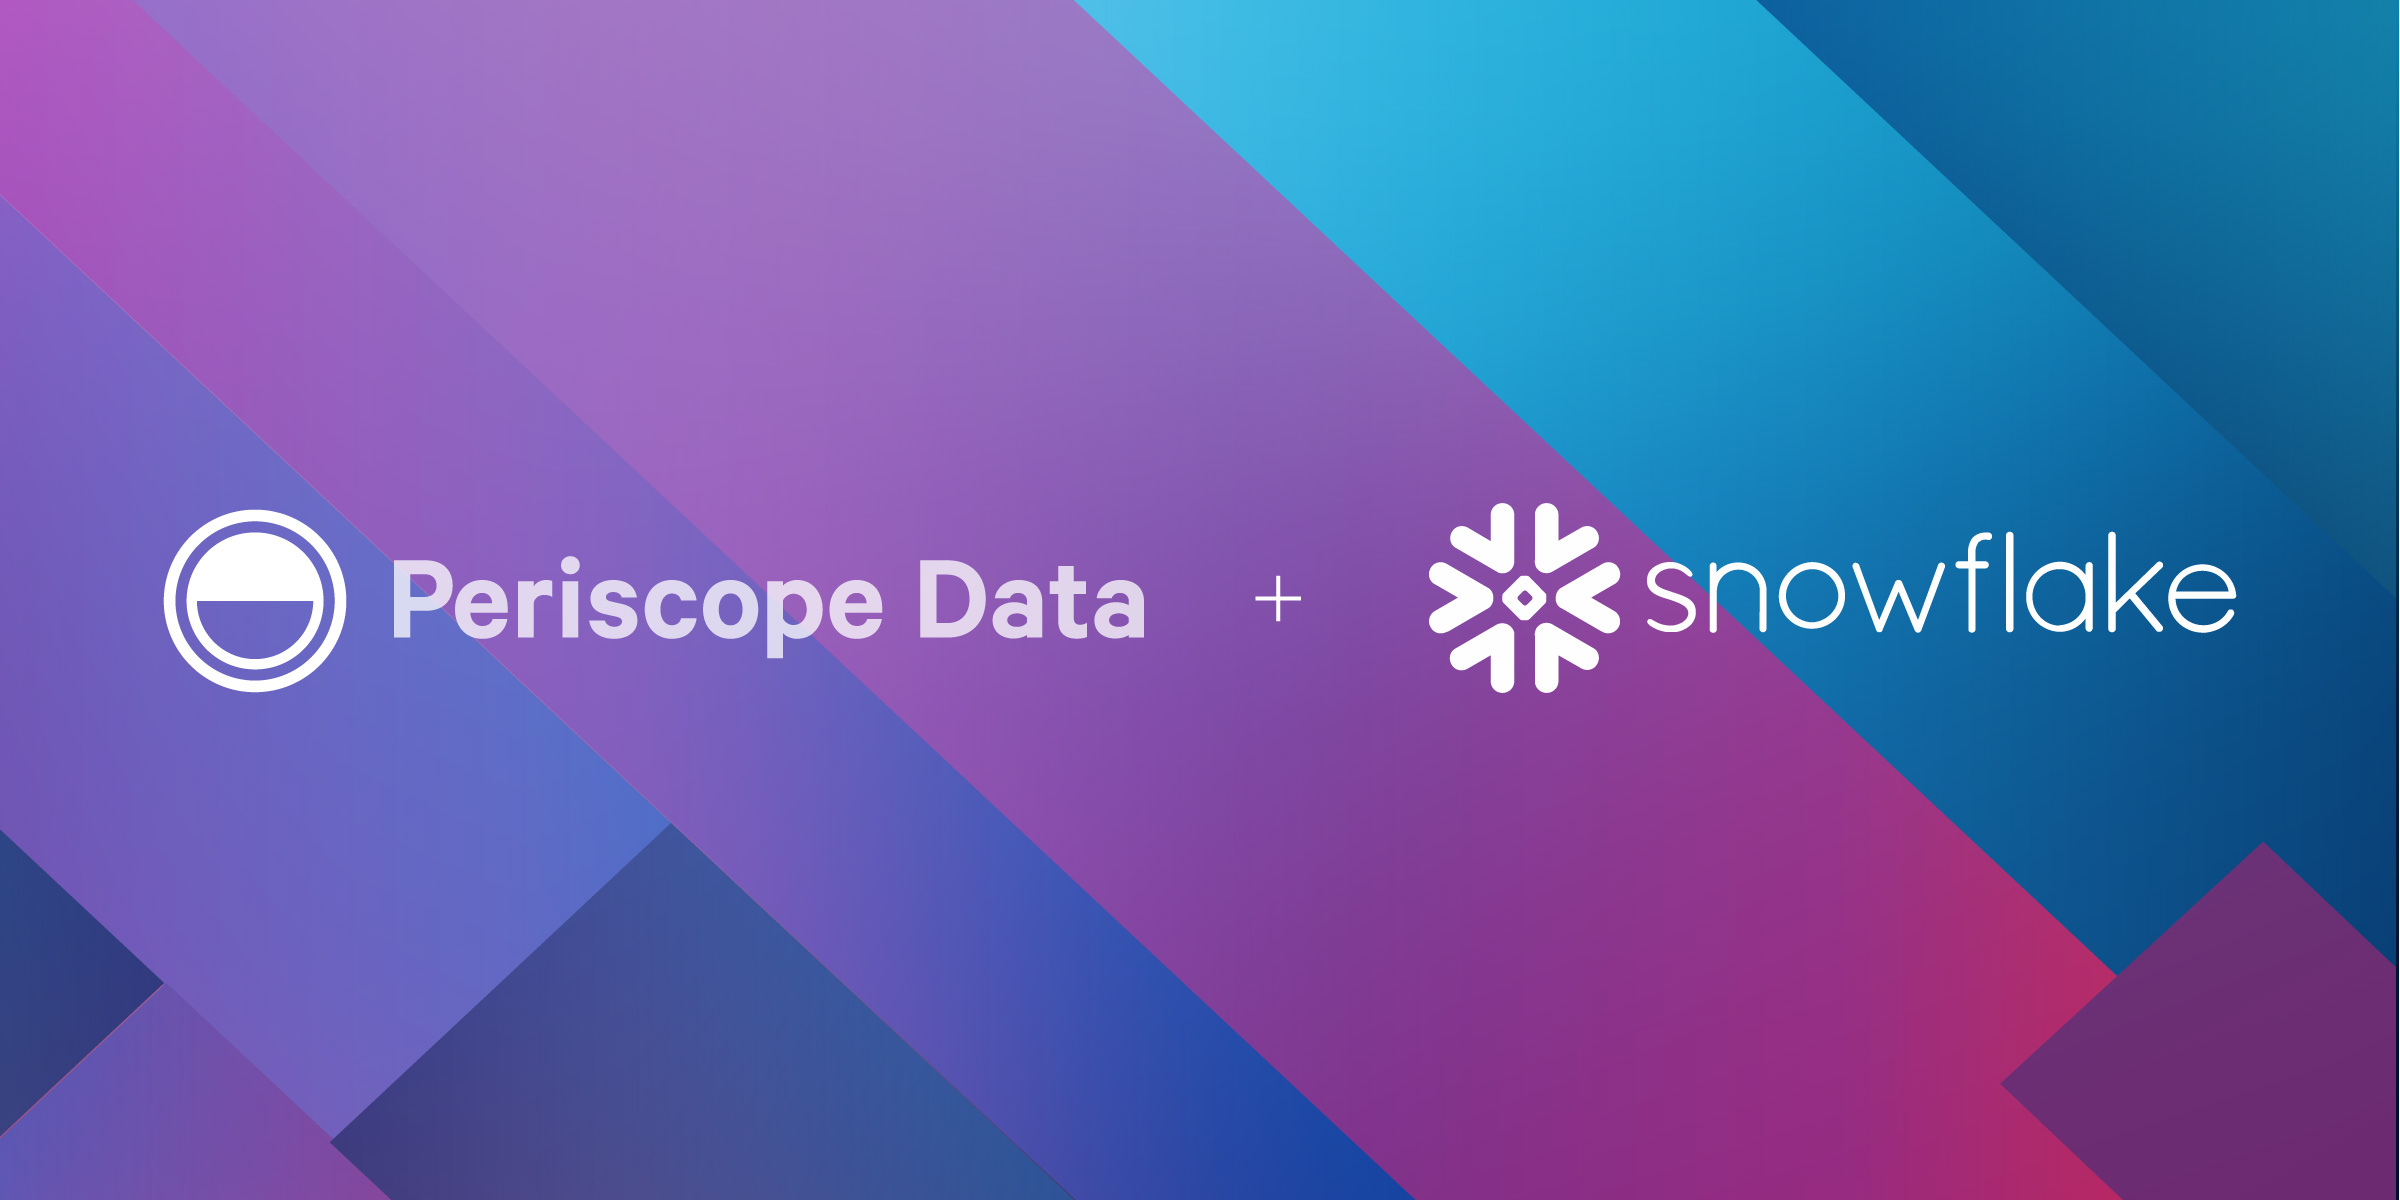 A Partnership Made in the Cloud: Periscope Data + Snowflake